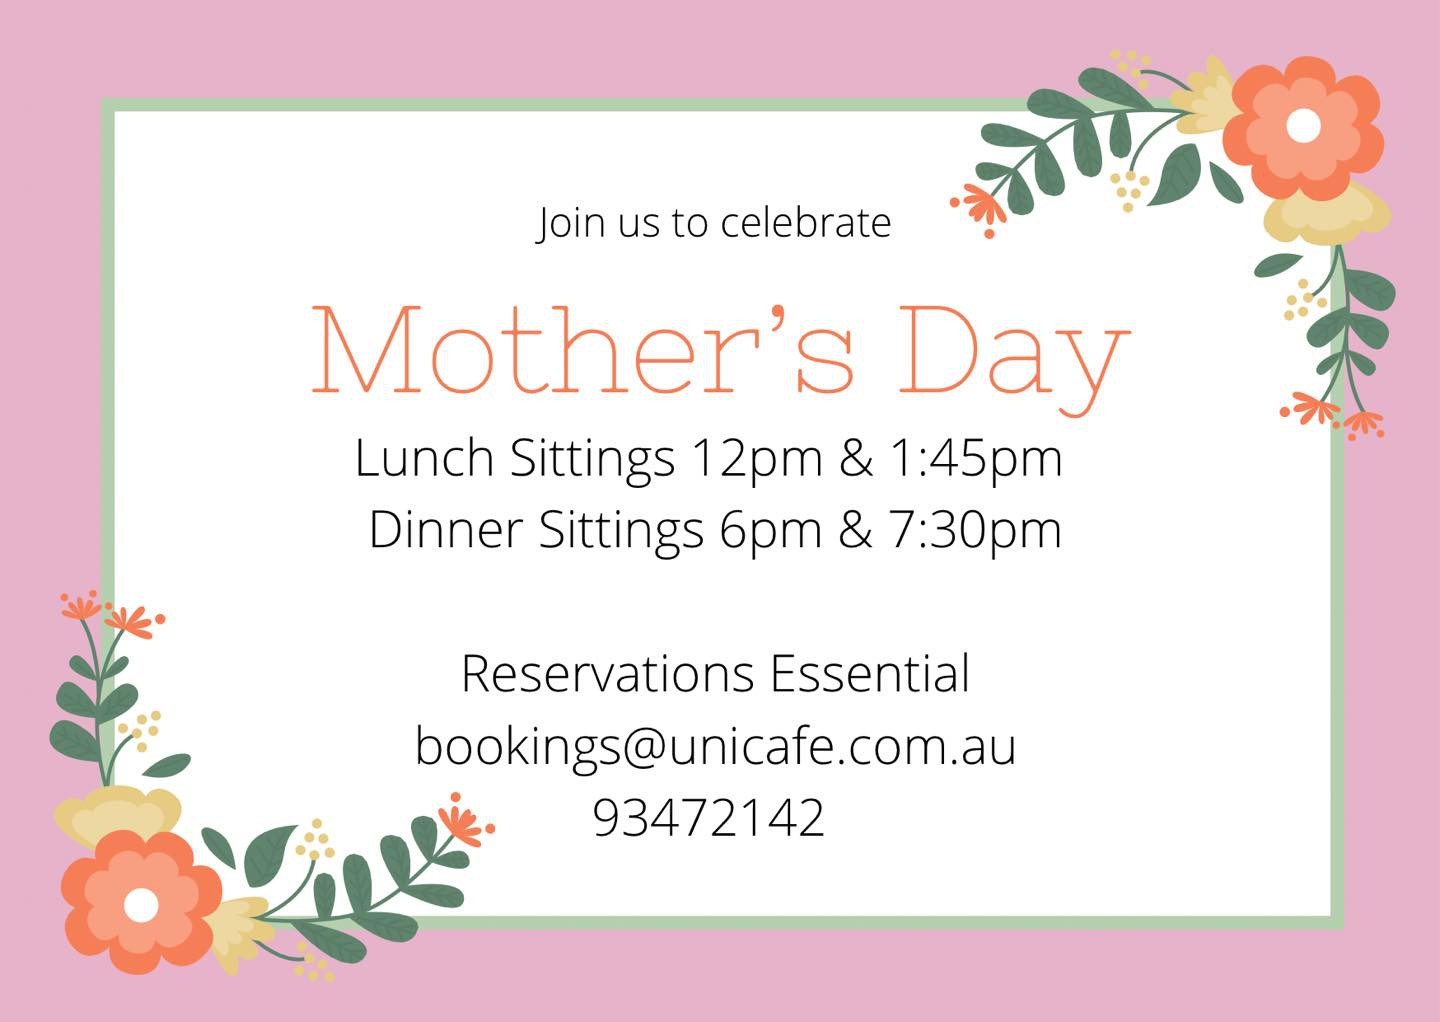 Mother's Day in Melbourne